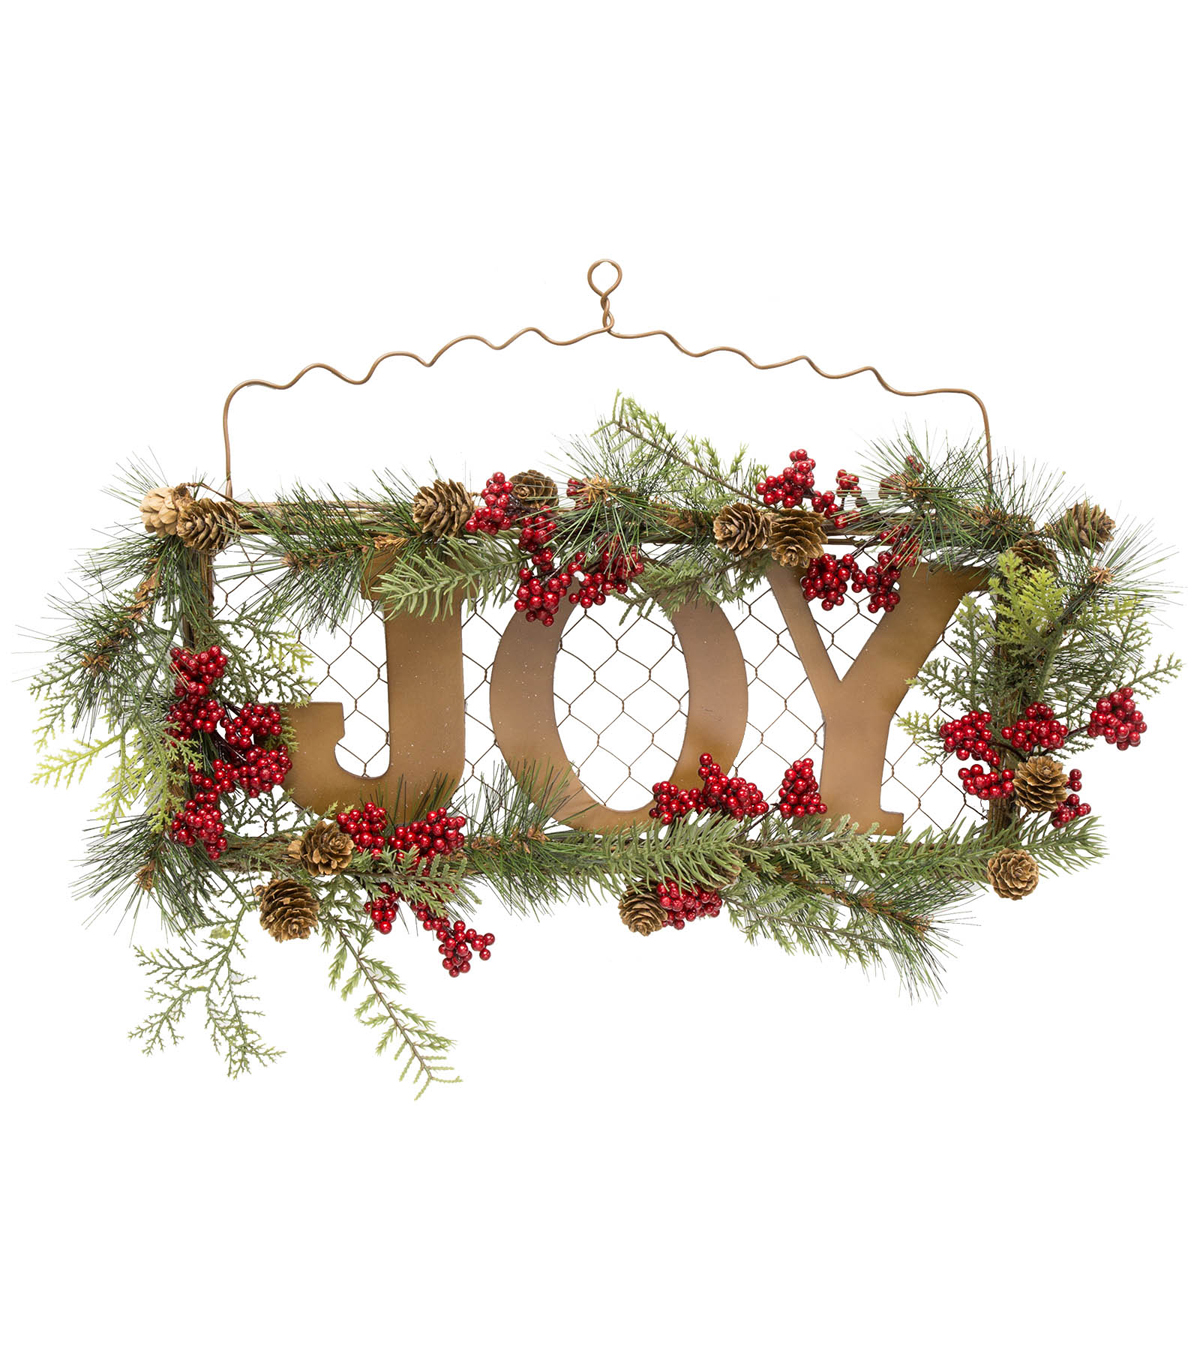 Blooming Holiday Pine & Berry on Chicken Wire Wall Decor with Joy Sign